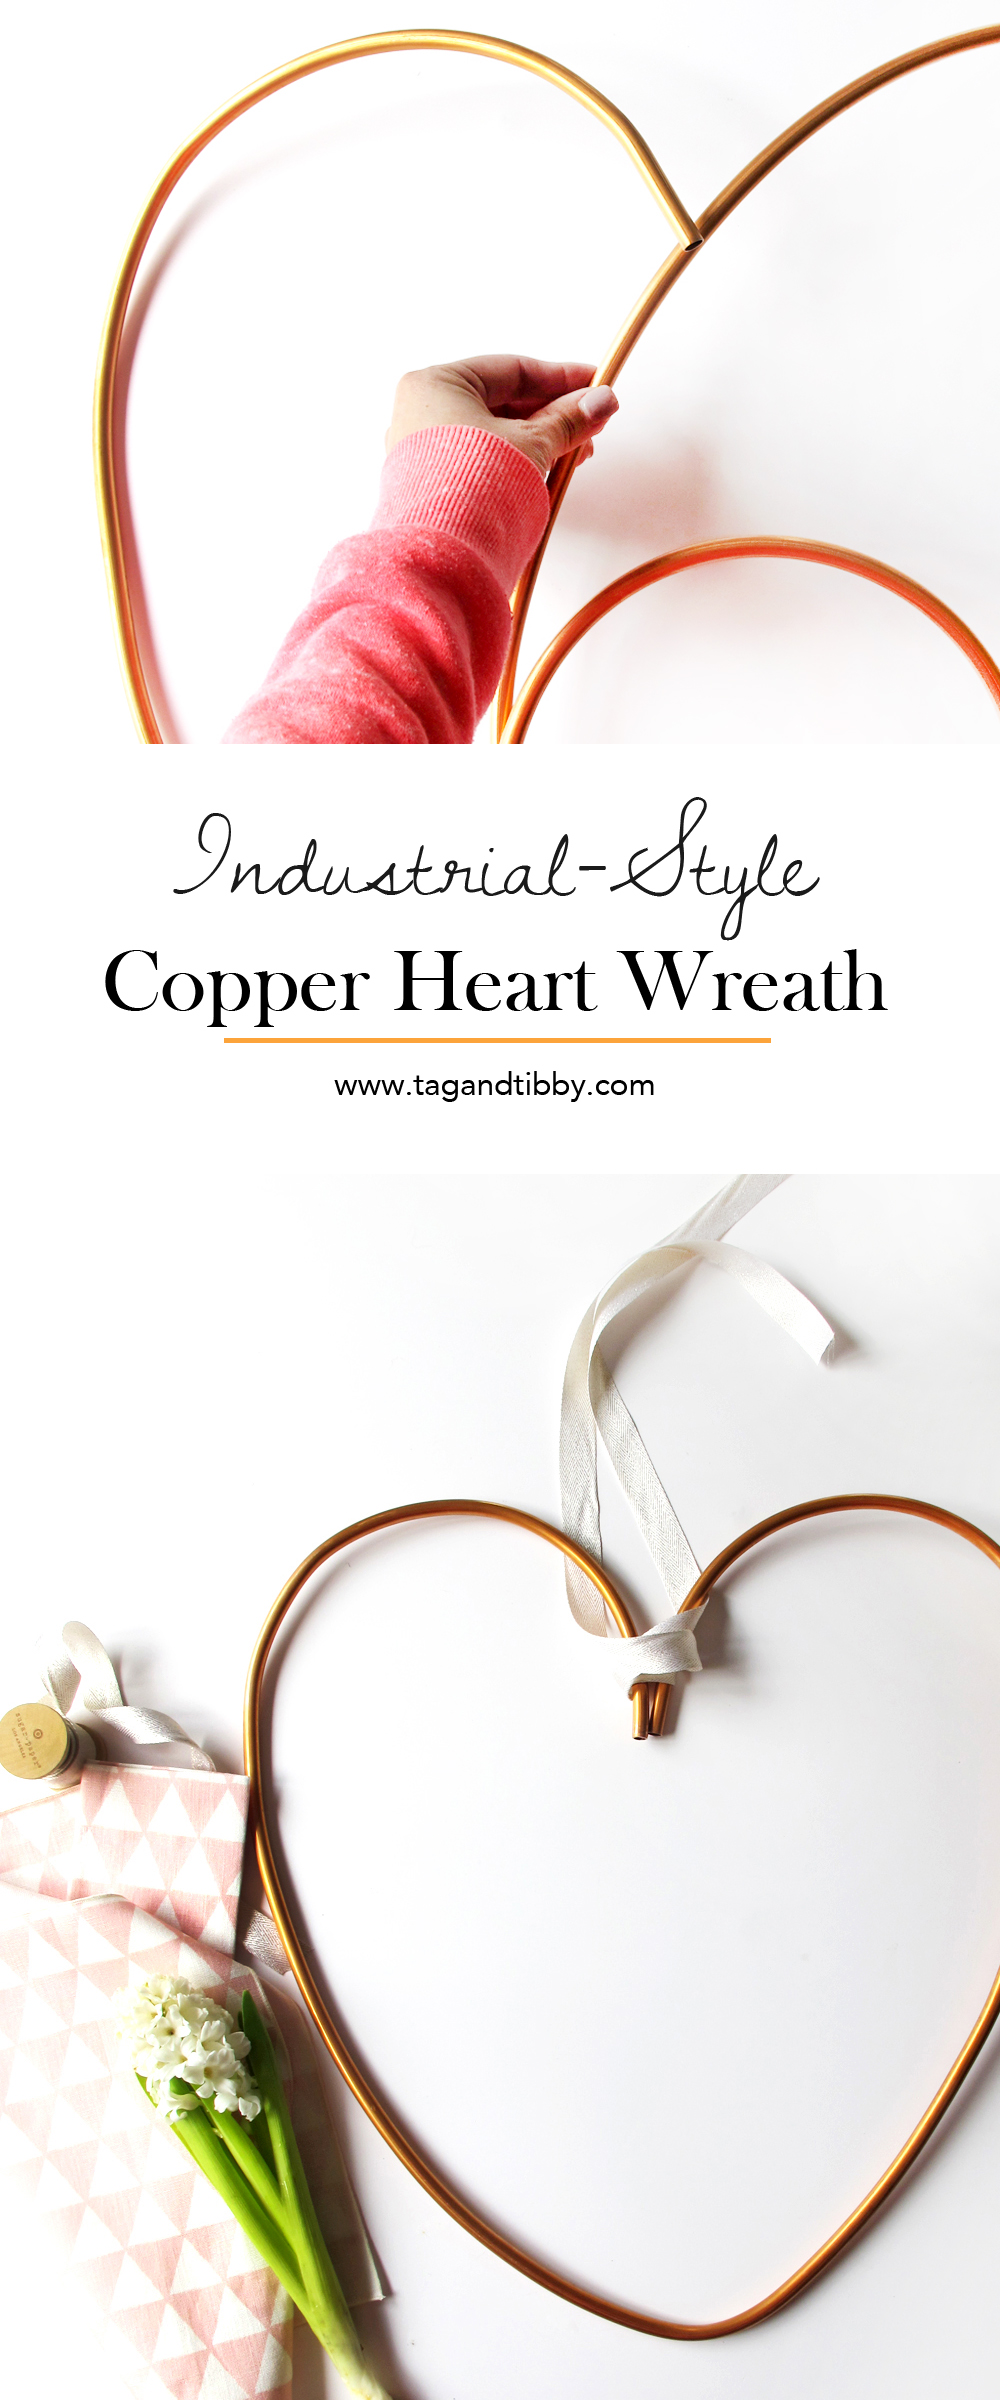 Industrial Style Copper Heart Wreath tutorial #ValentinesDayDIY